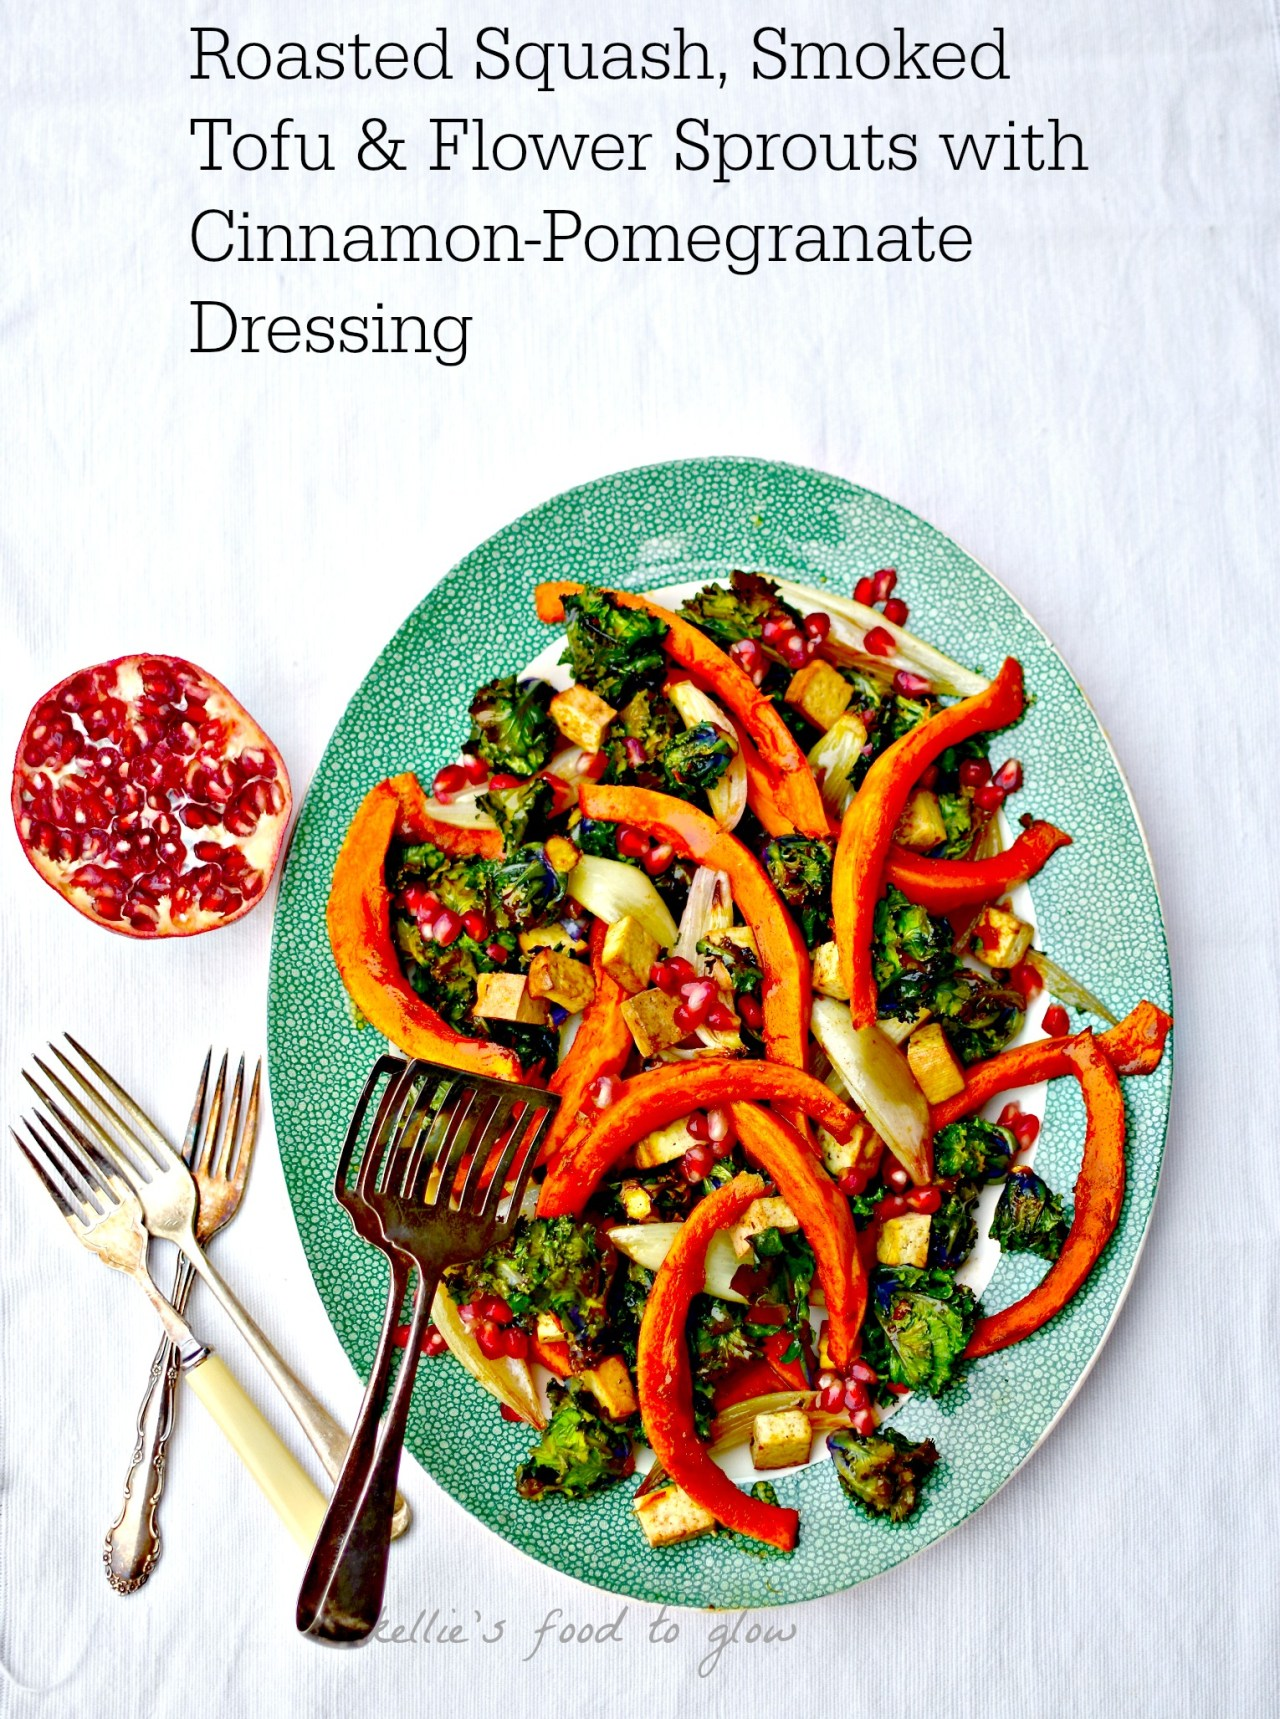 A glowing, richly flavoured easy dish with oodles of nutrients and plant goodness. The cinnamon-pomegrante dressing pulls it all together and makes it more than the sum of its parts. Vegan and naturally gluten-free.